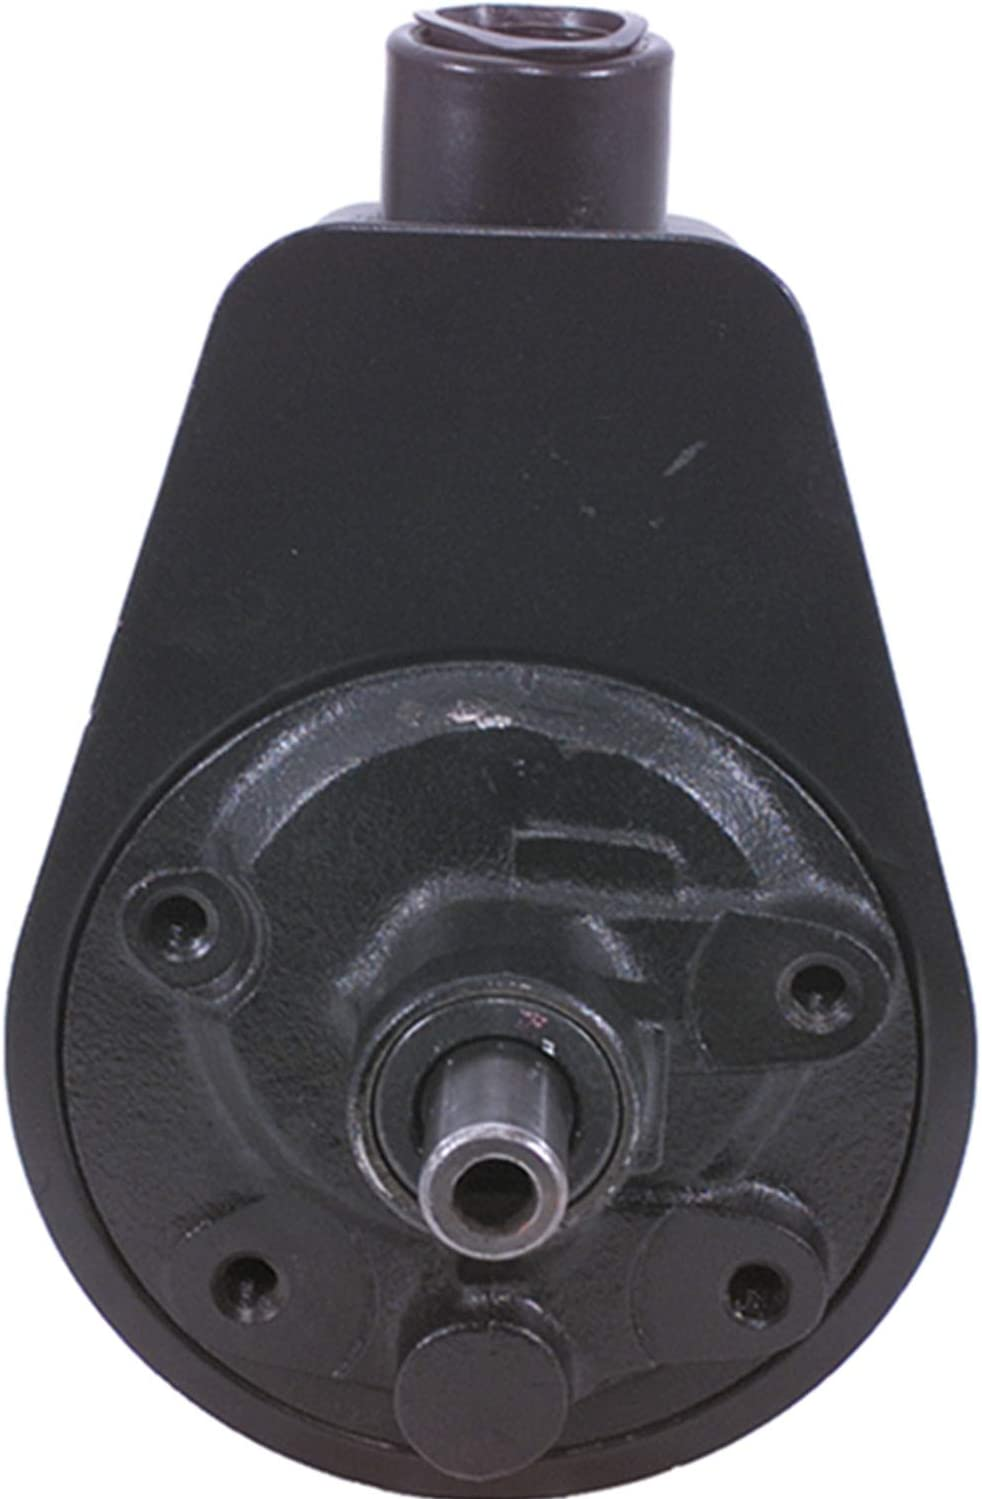 Cardone 20-6803 Remanufactured Power Pump Reservoi with Complete Free Shipping New life Steering